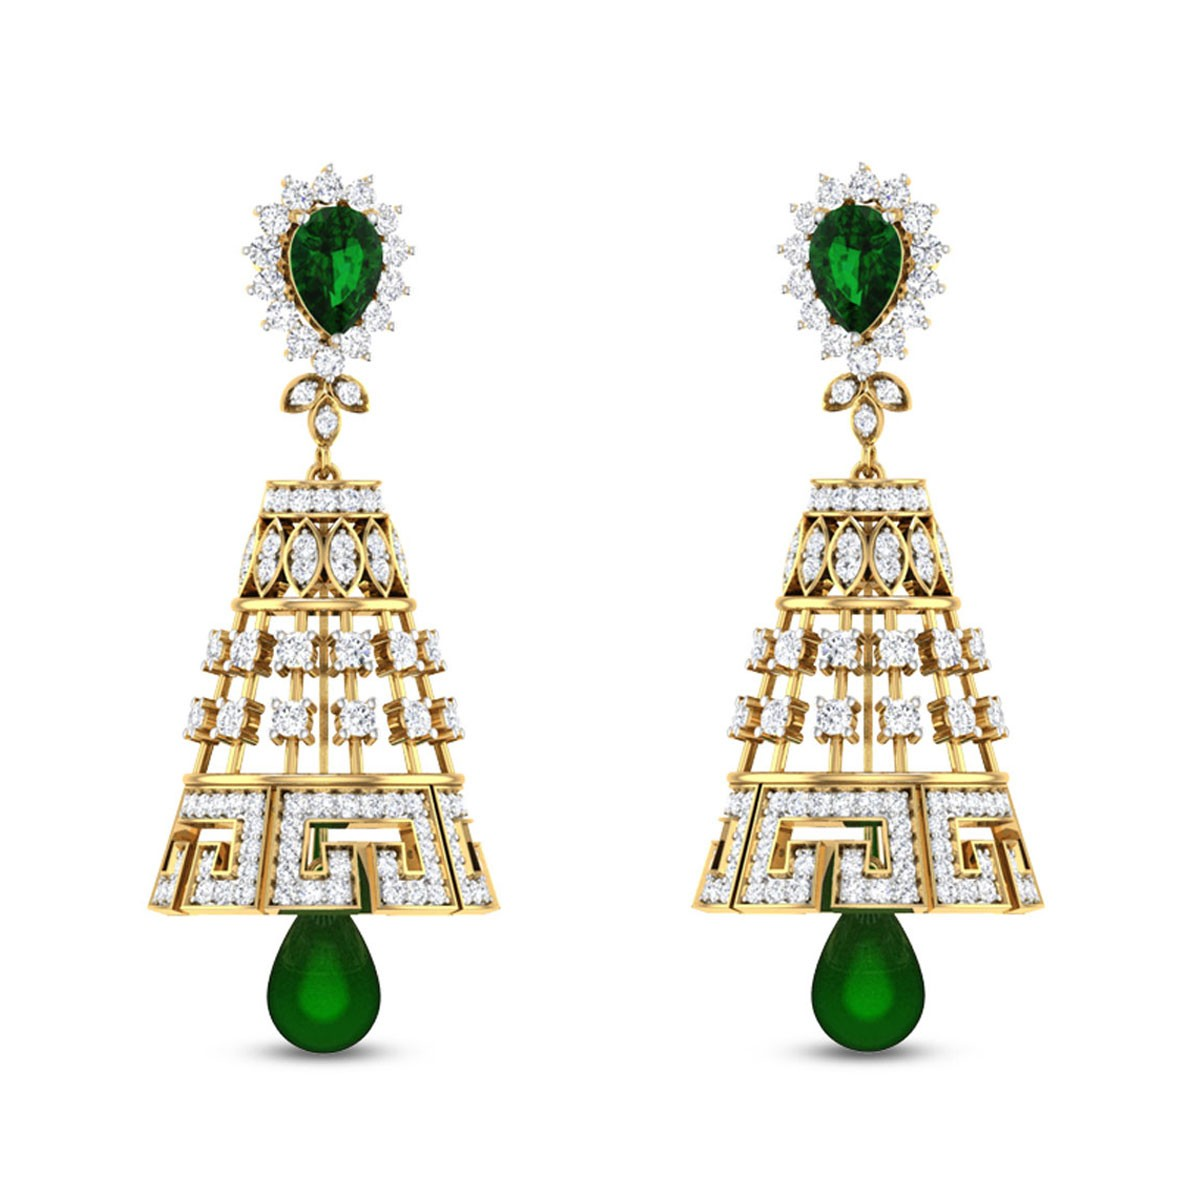 Classy Emerald Symphony Diamond Earrings